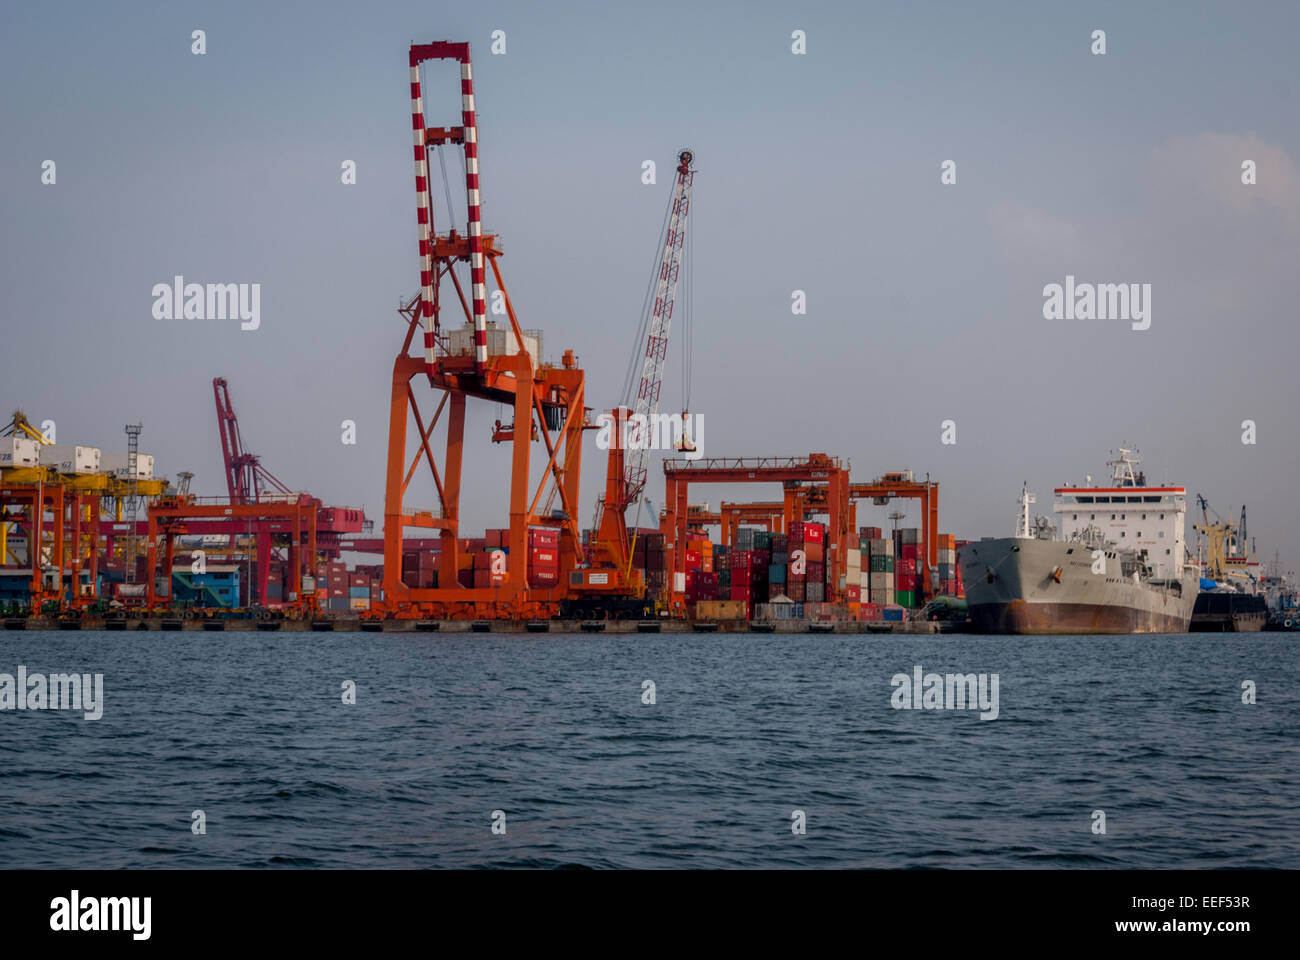 The quay of Jakarta Port. - Stock Image